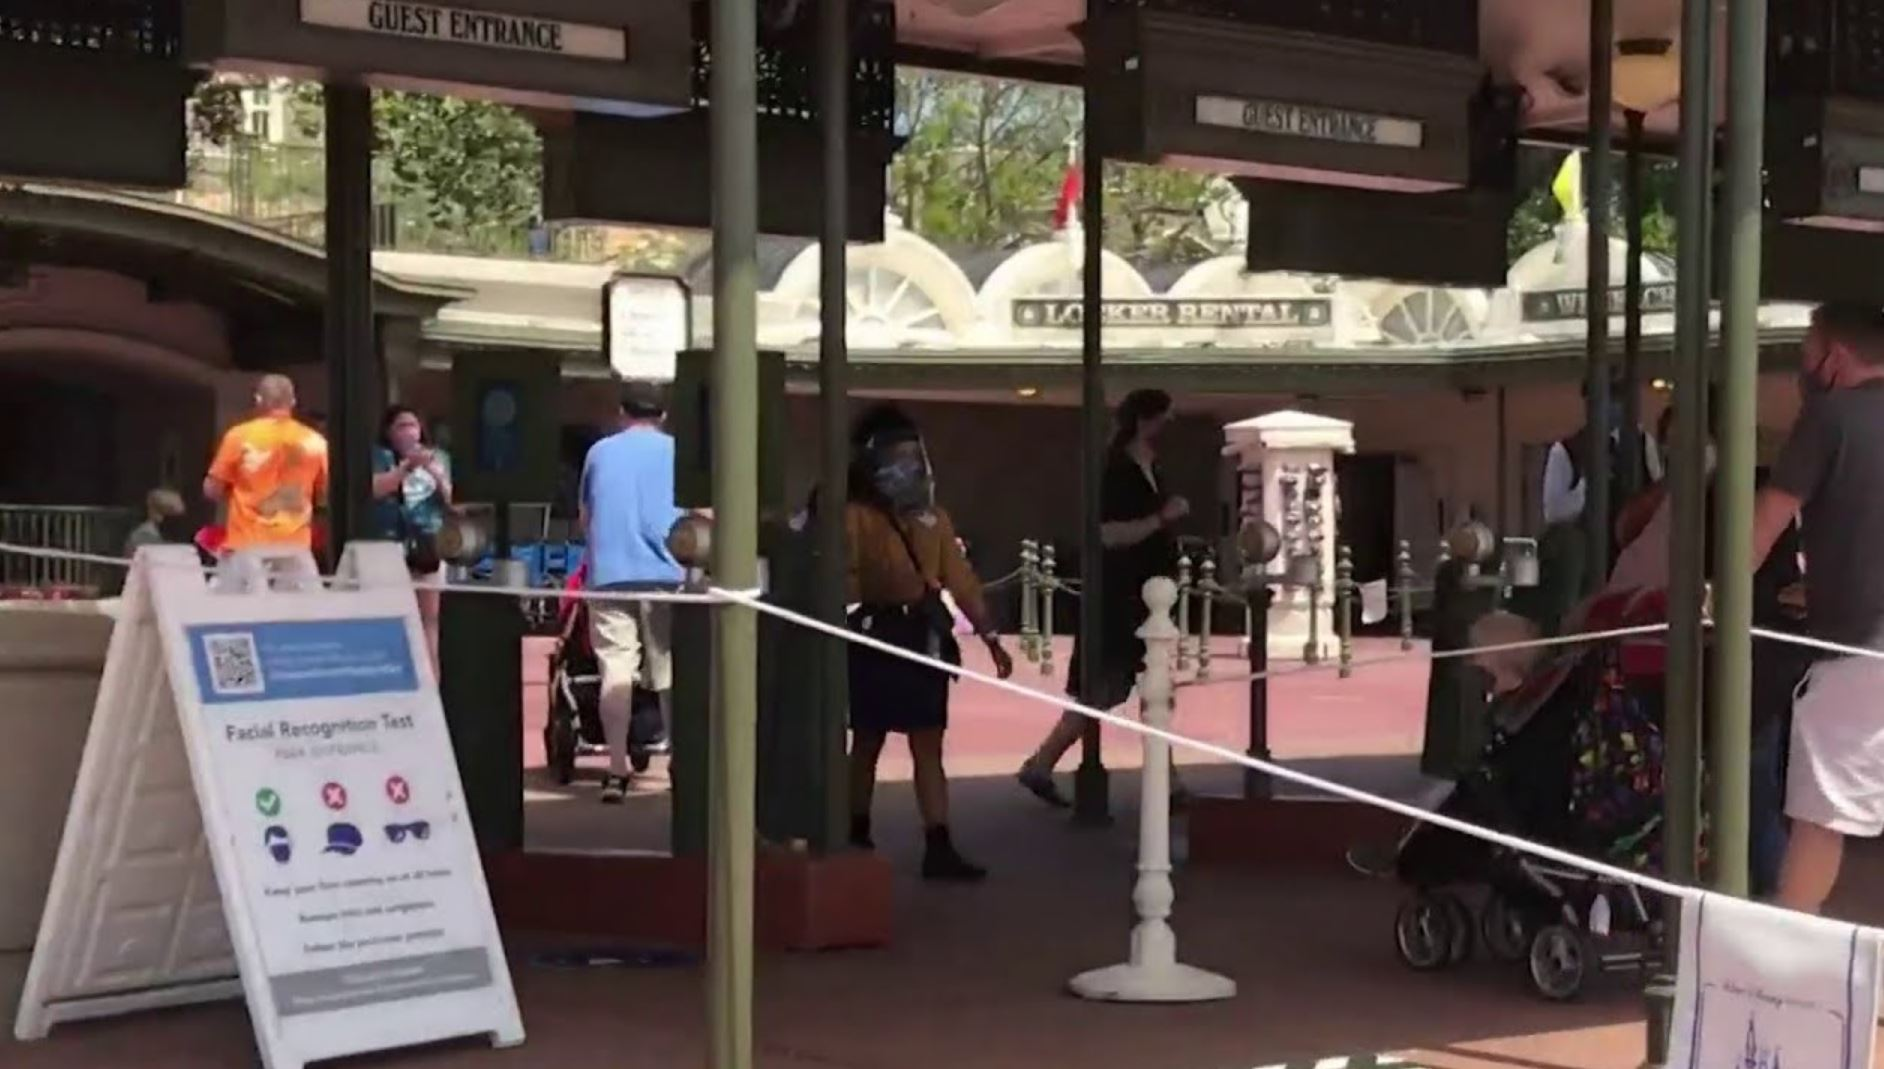 Magic Kingdom Uses COVID-19 As An Excuse To Install Facial Recognition 1